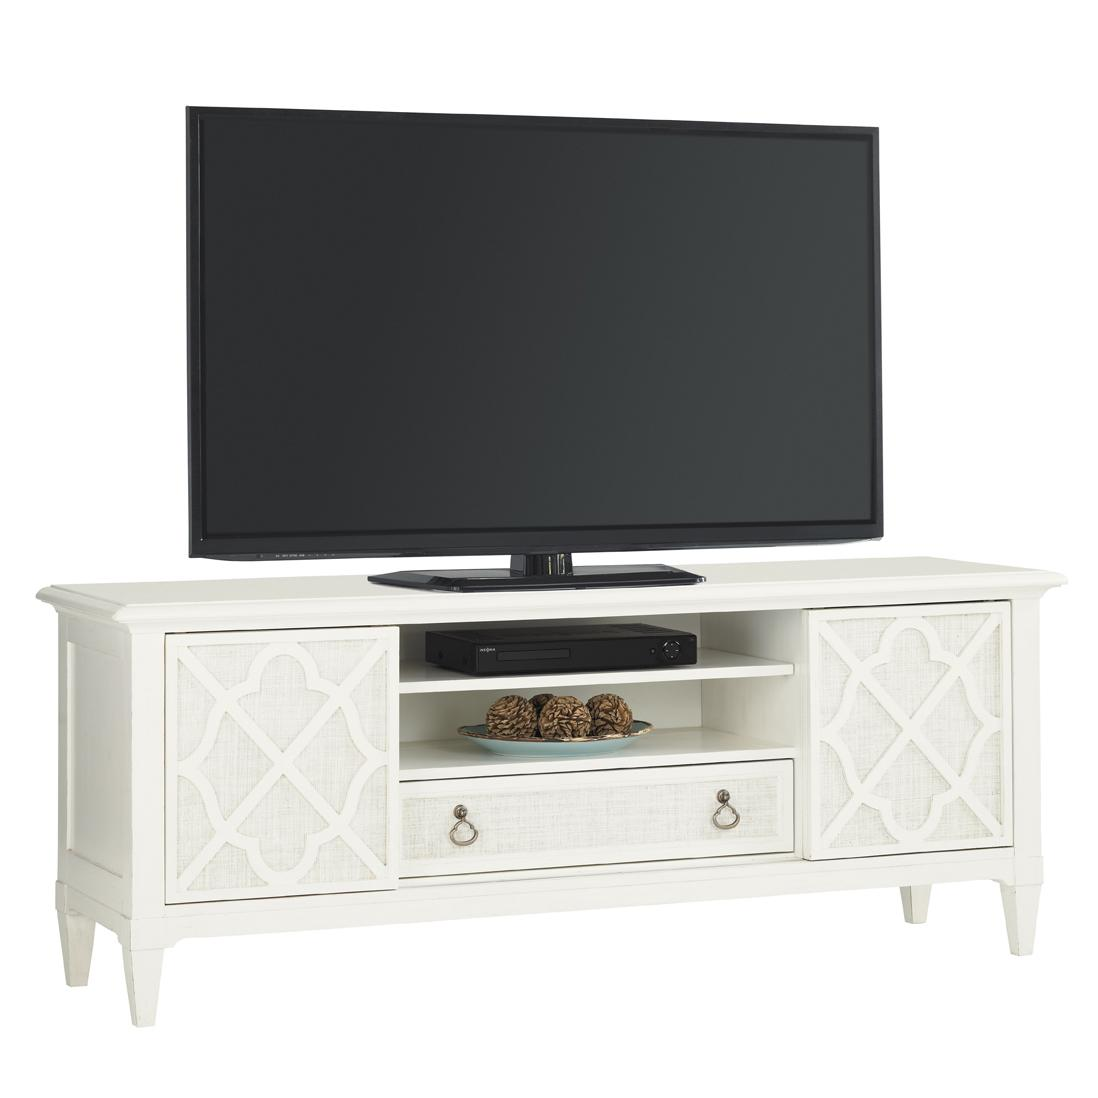 Ivory Key Wharf Street Entertainment Console by Tommy Bahama Home at Baer's Furniture